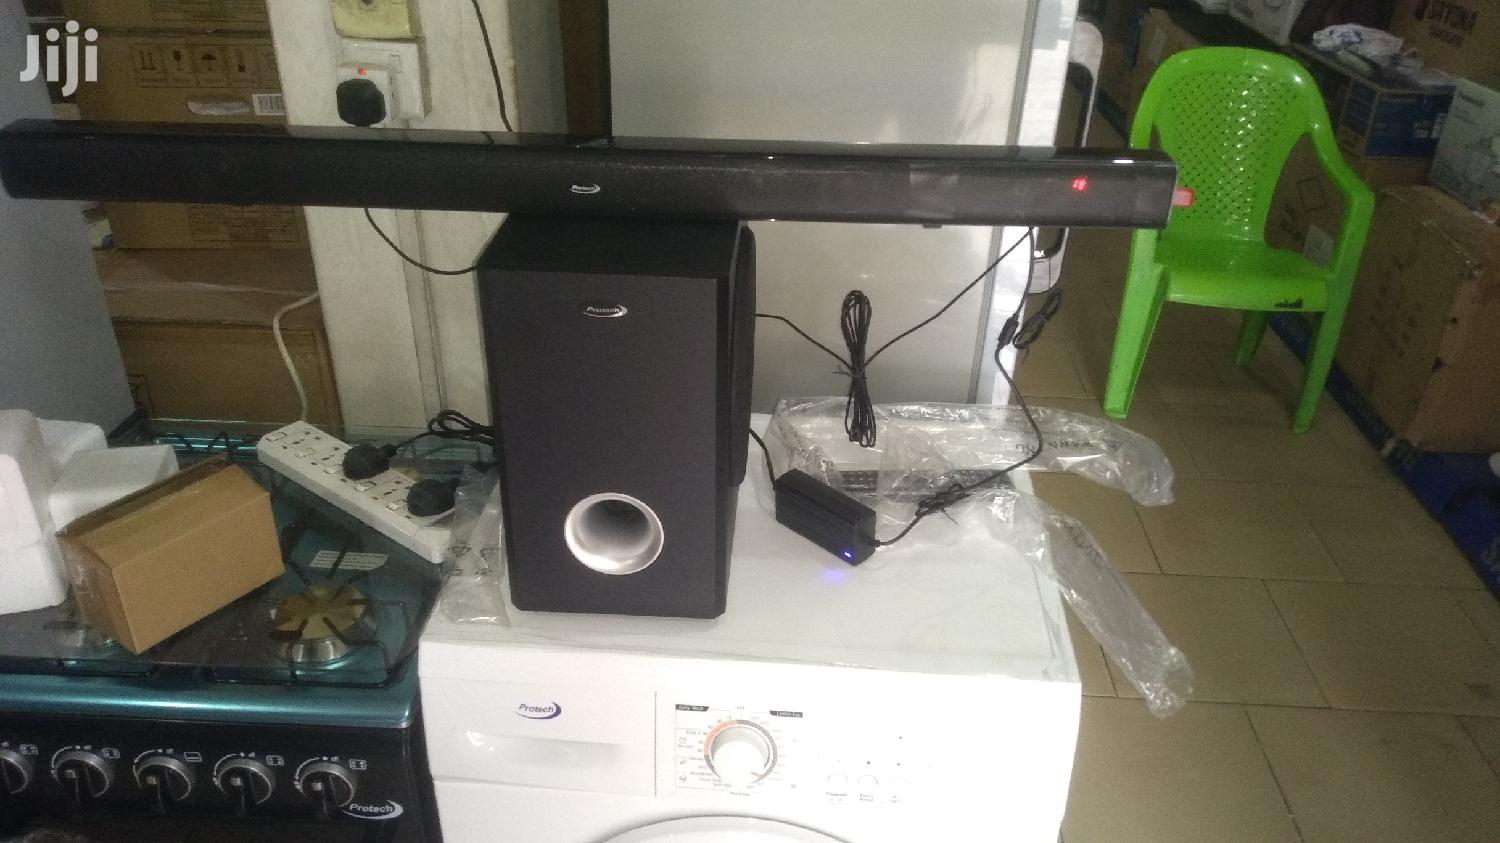 Protech Soundbar With Powerful Bass And FM